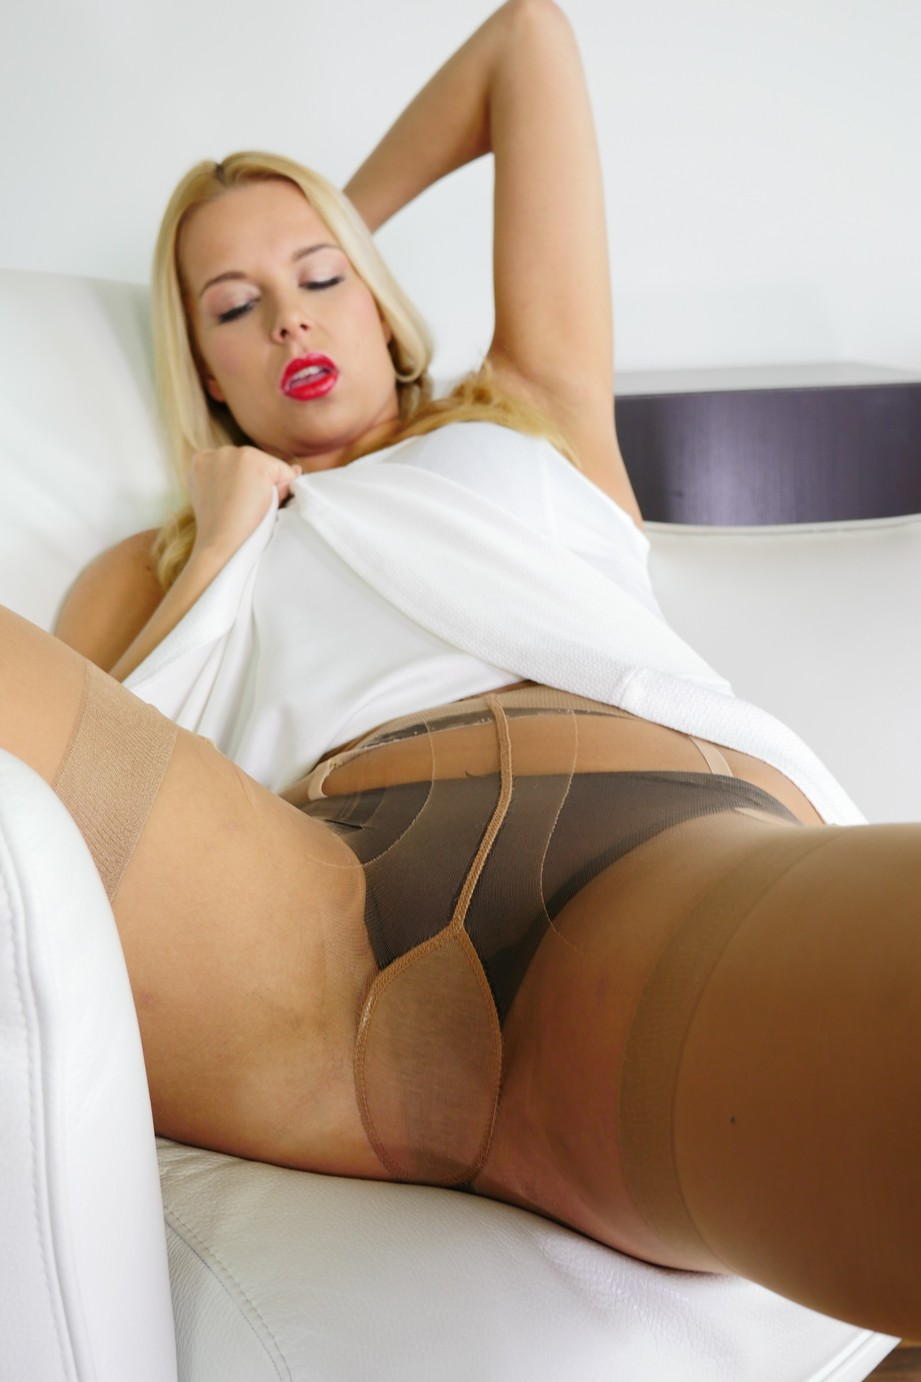 Nylon My Nylon Dreams Nylons Planet 26